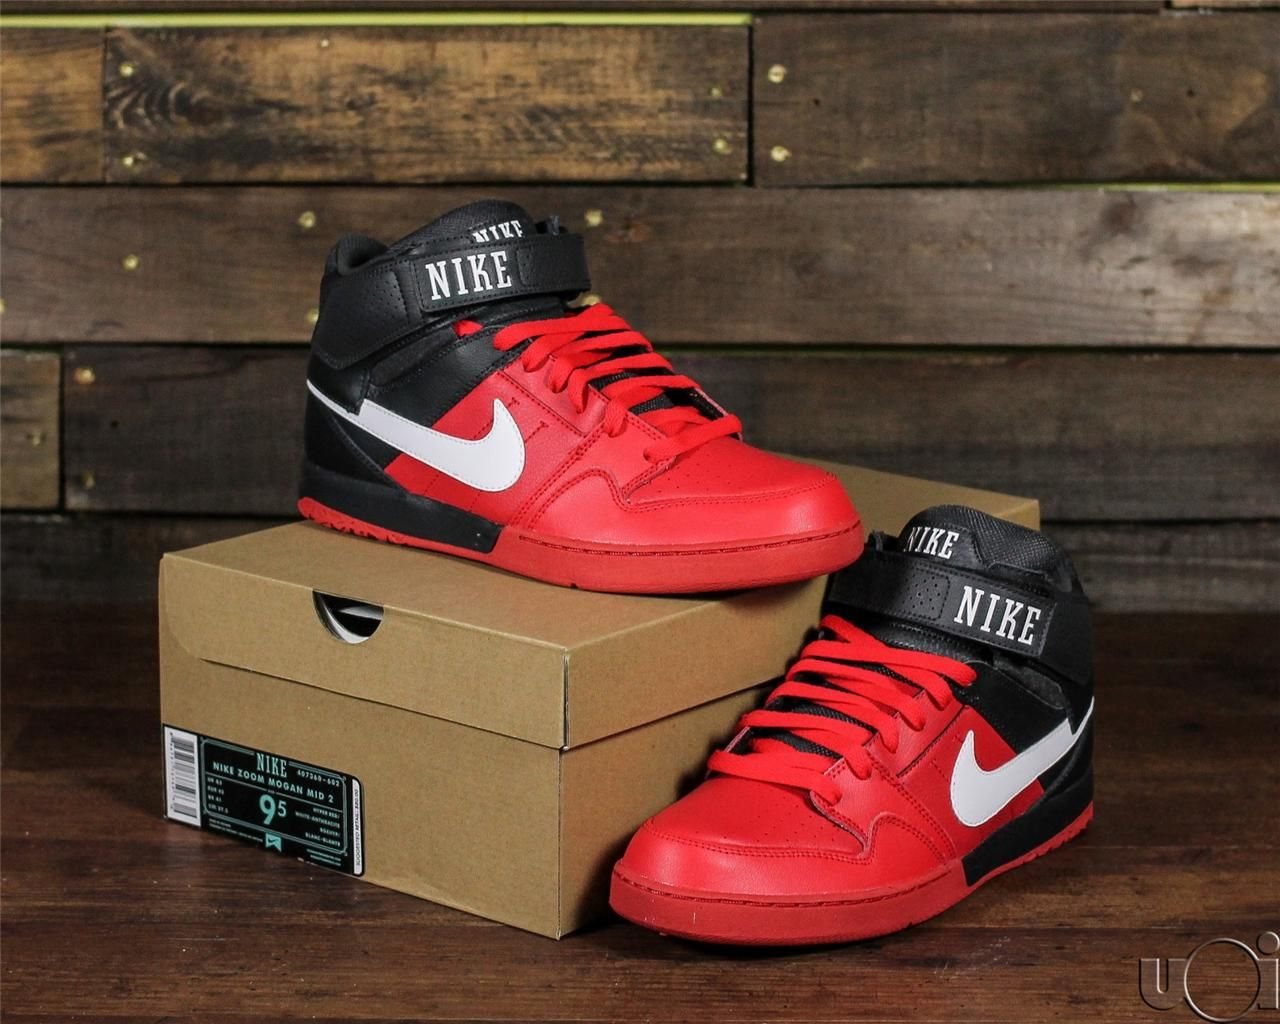 Nike New ZOOM AIR SB English Red And Black Online